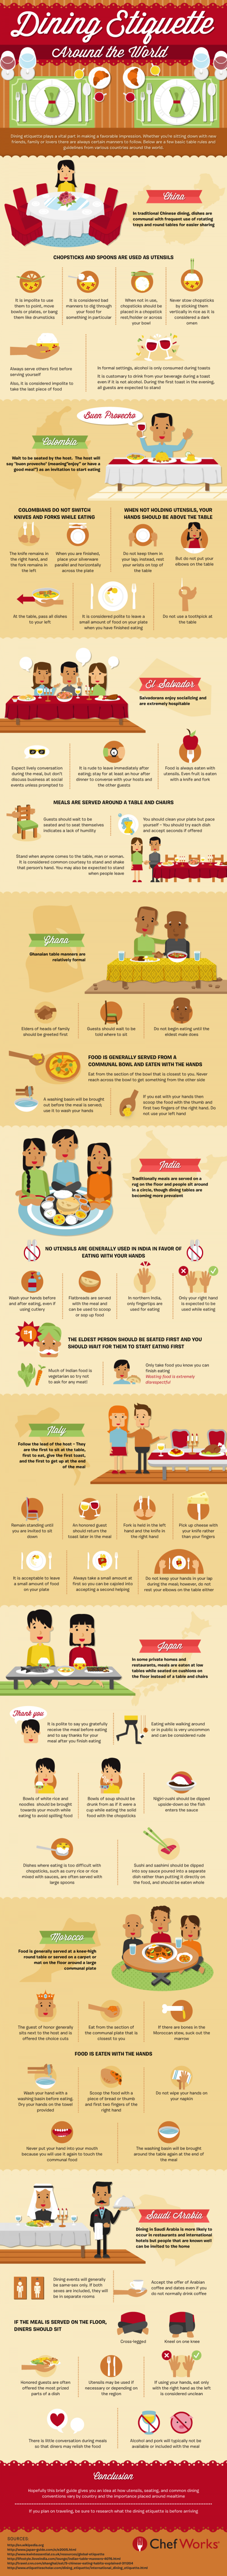 Dining-Etiquettes-around-the-world-infographic1